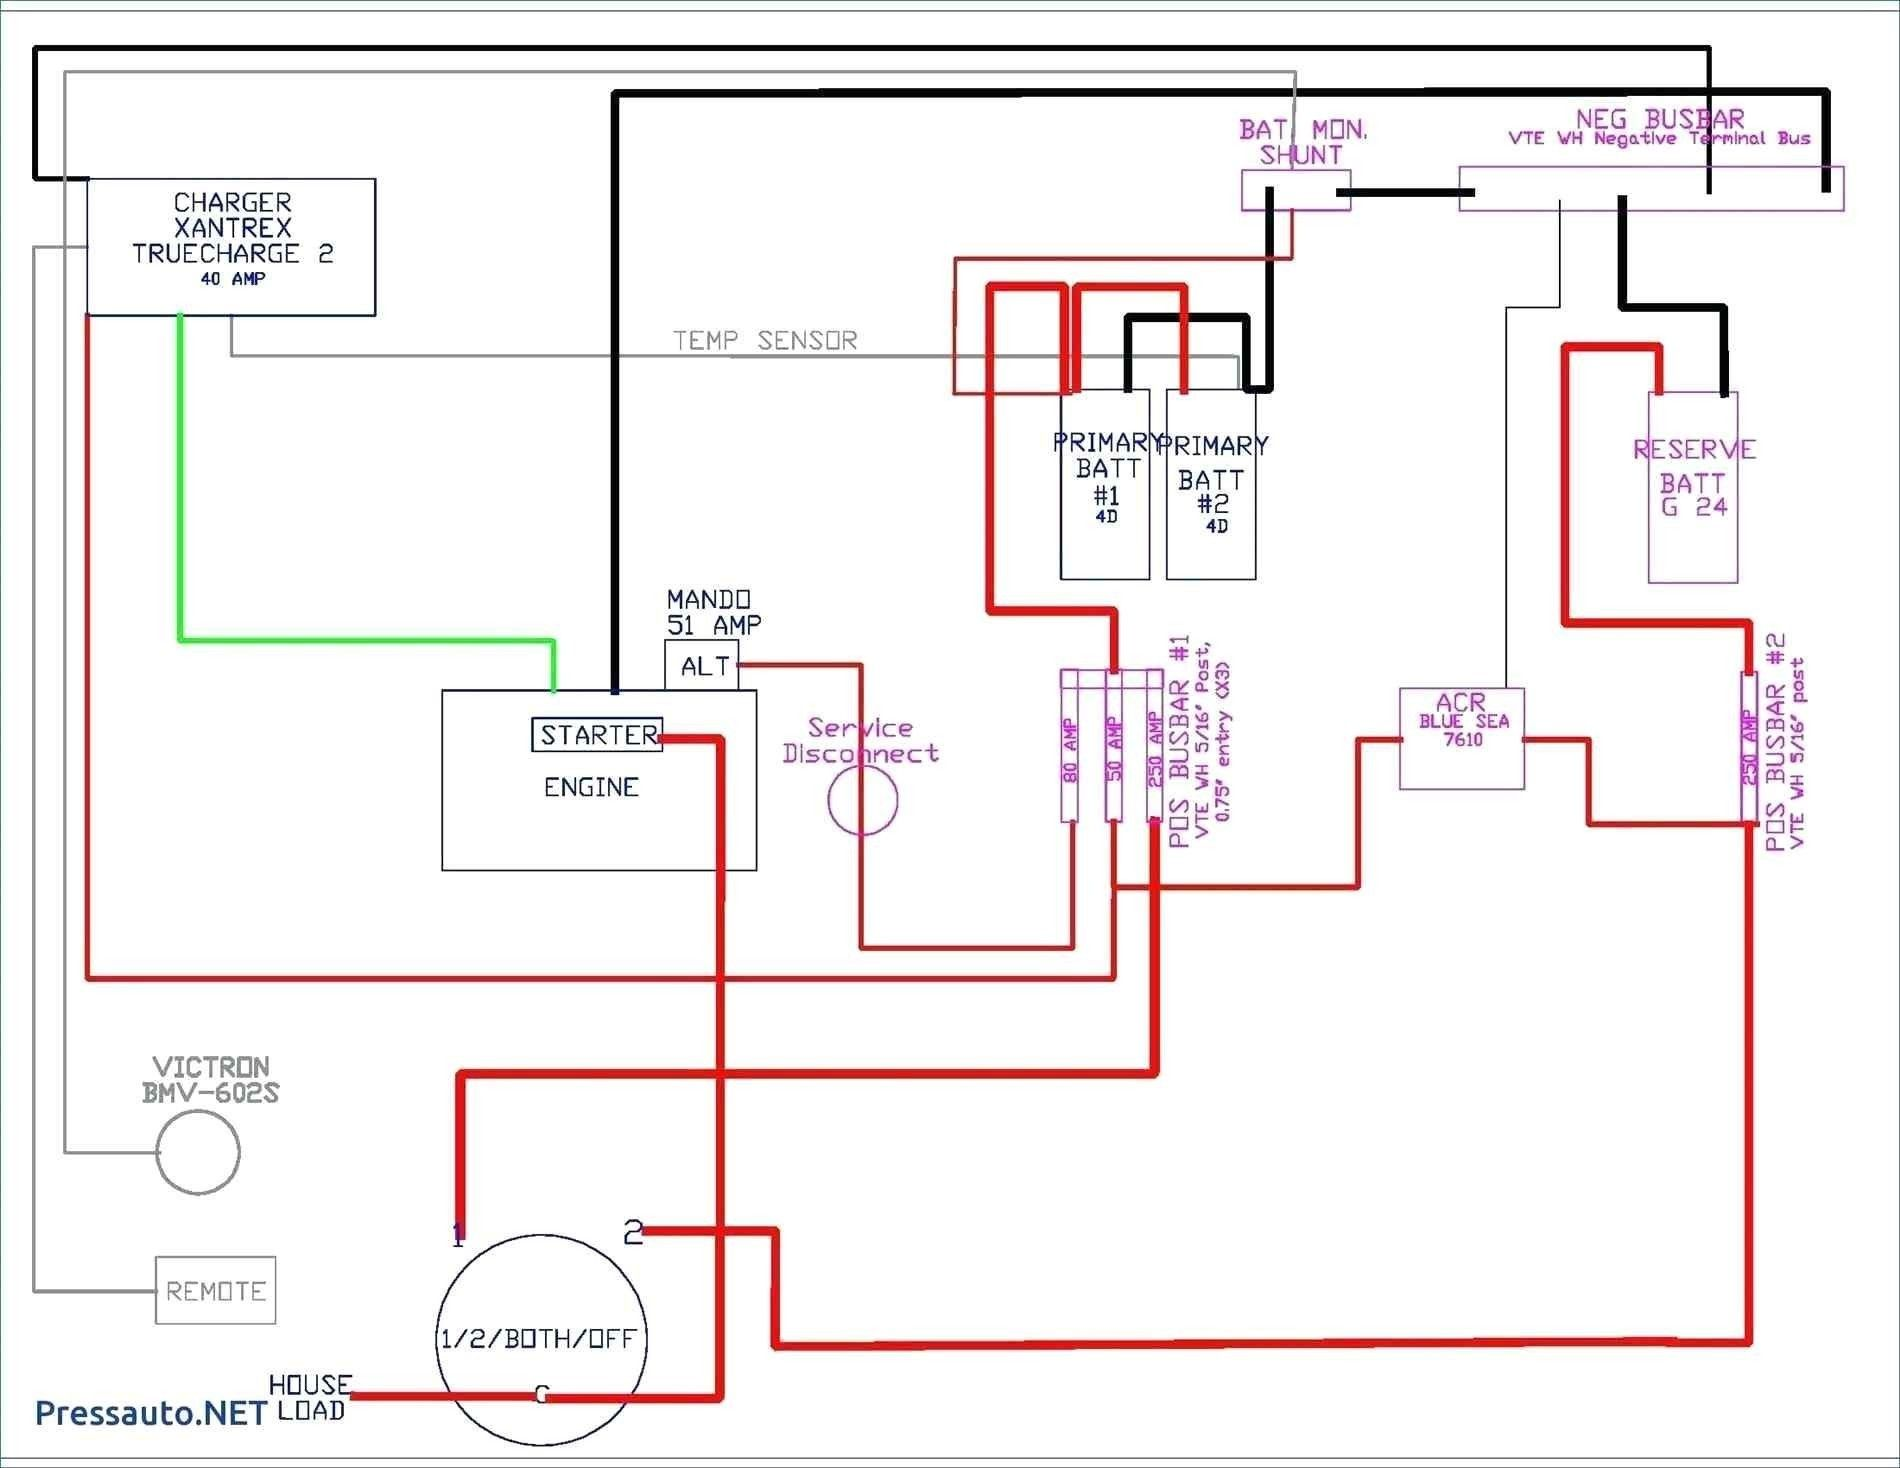 Diagram Wiringdiagram Diagramming Diagramm Visuals Visualisation Graphical Electrical Circuit Diagram Electrical Diagram Circuit Diagram